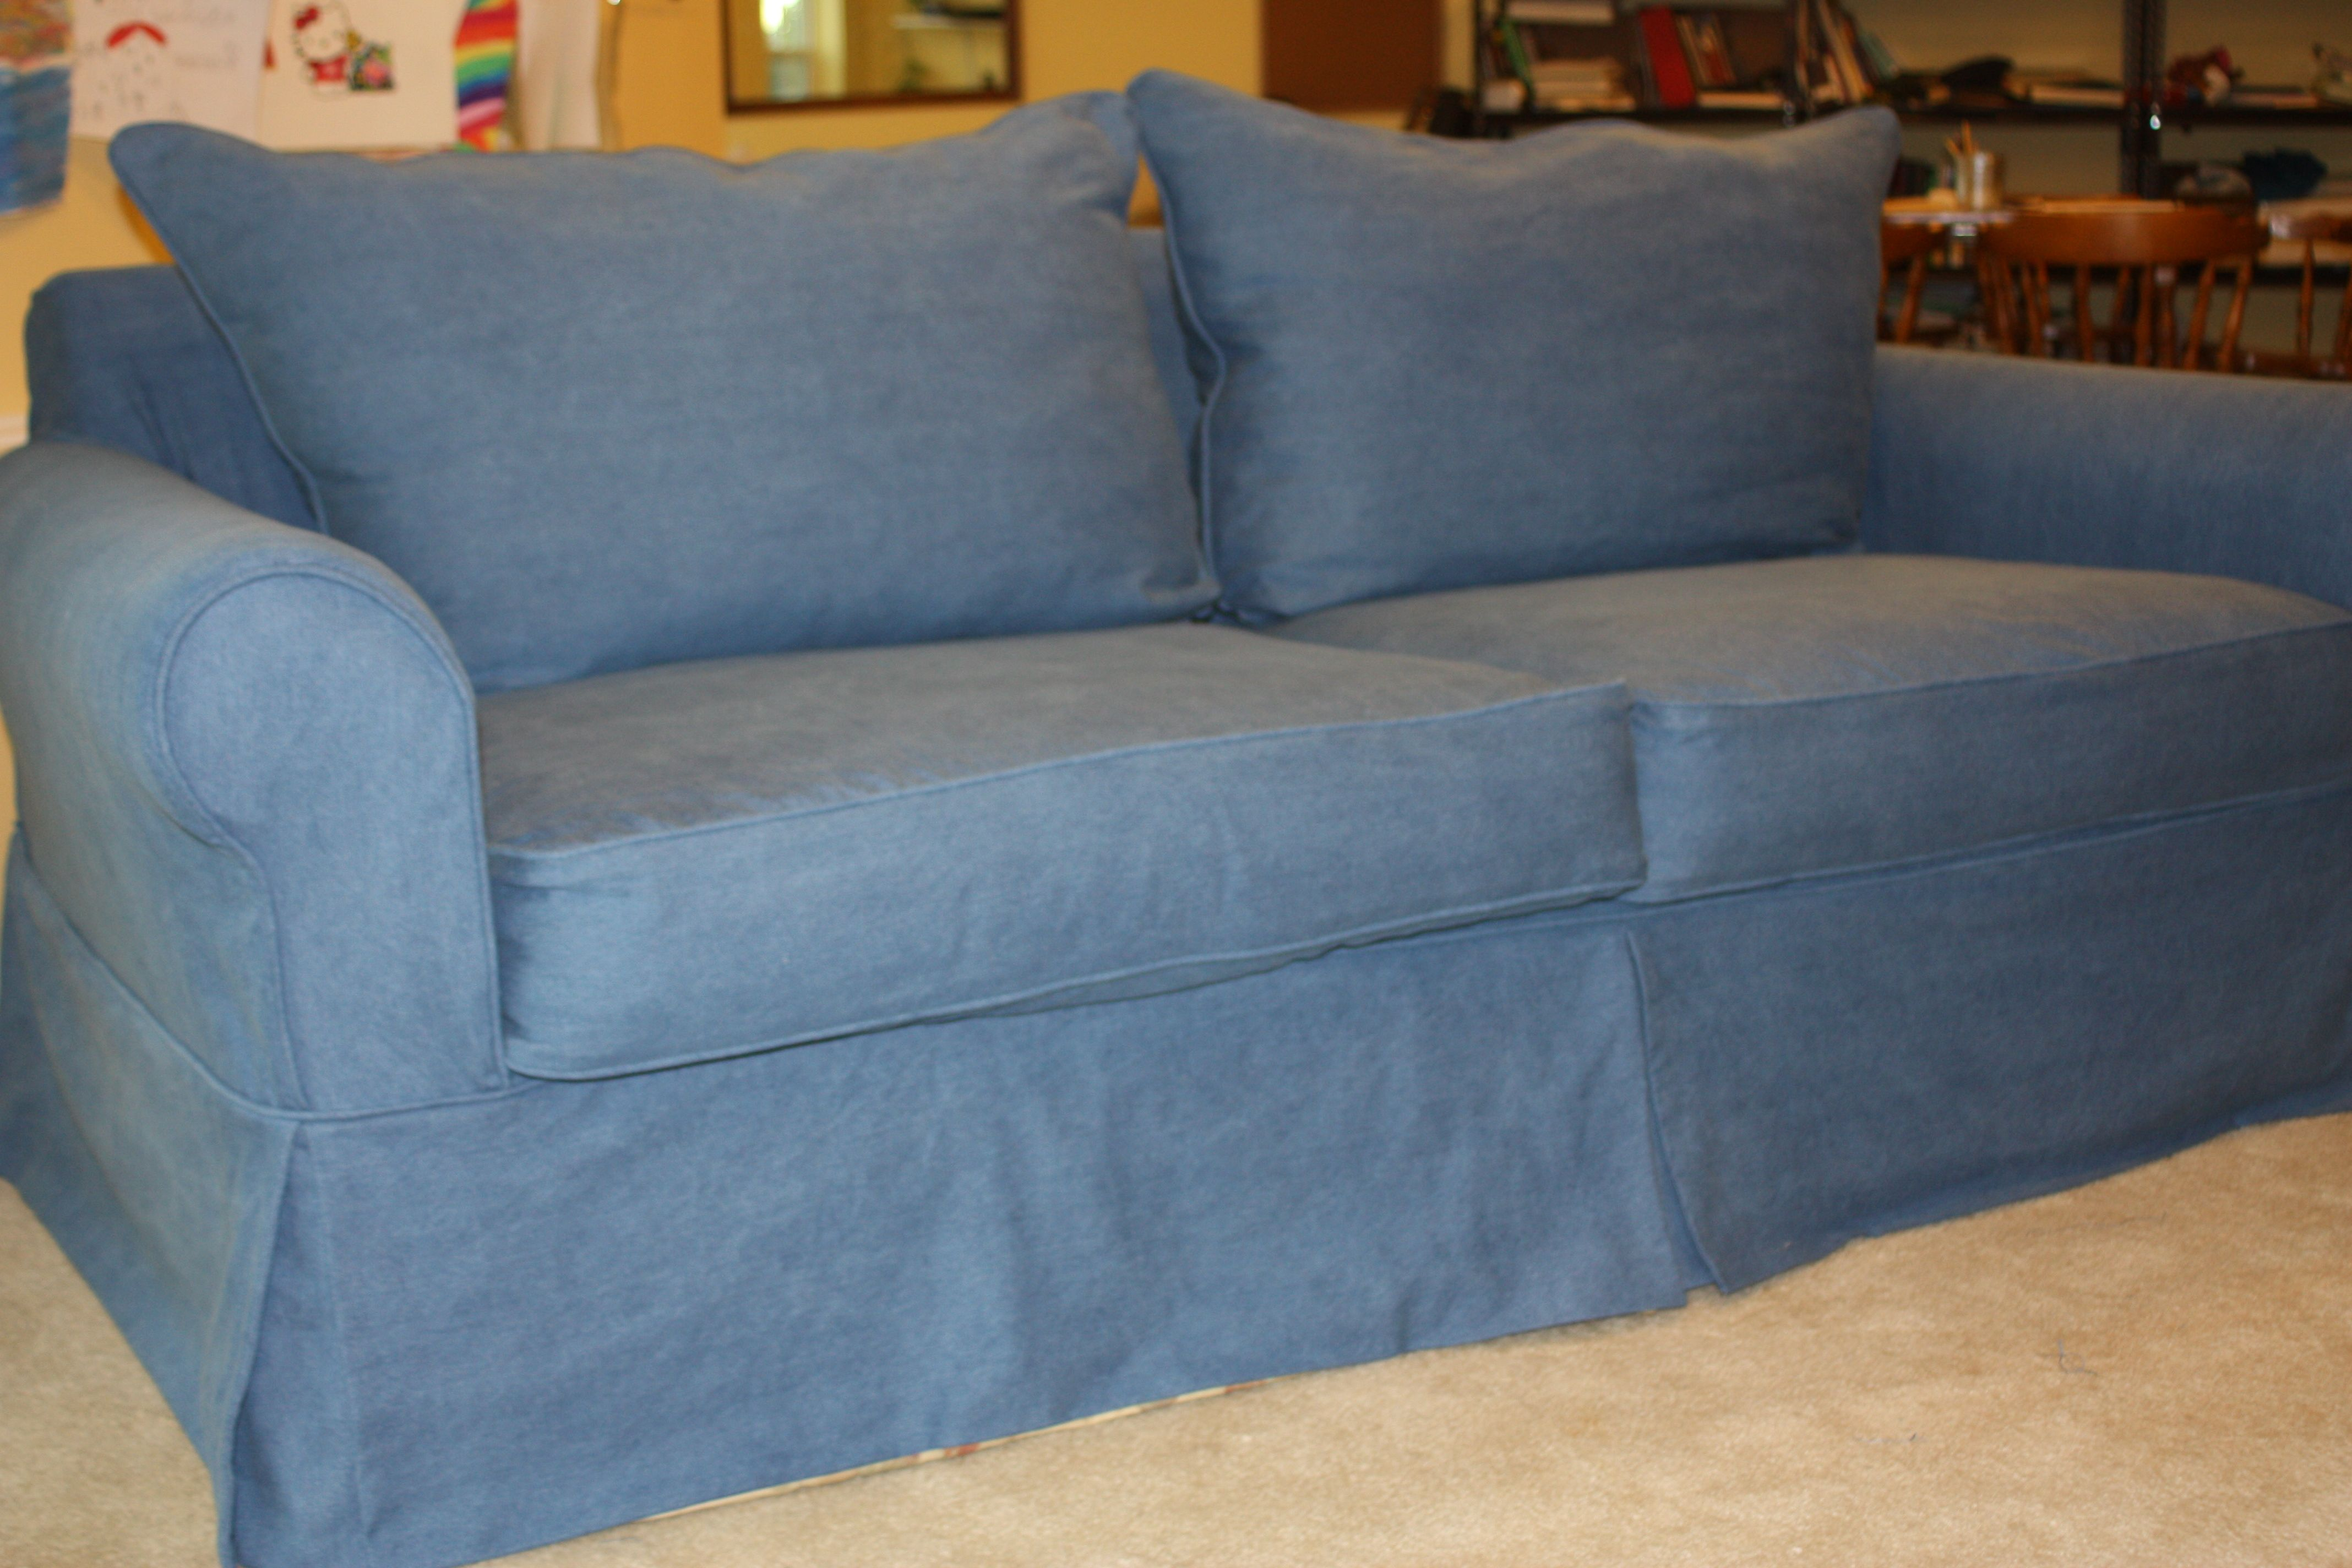 blue jean stain on sofa soft leather sofas uk denim slipcover from twill studio